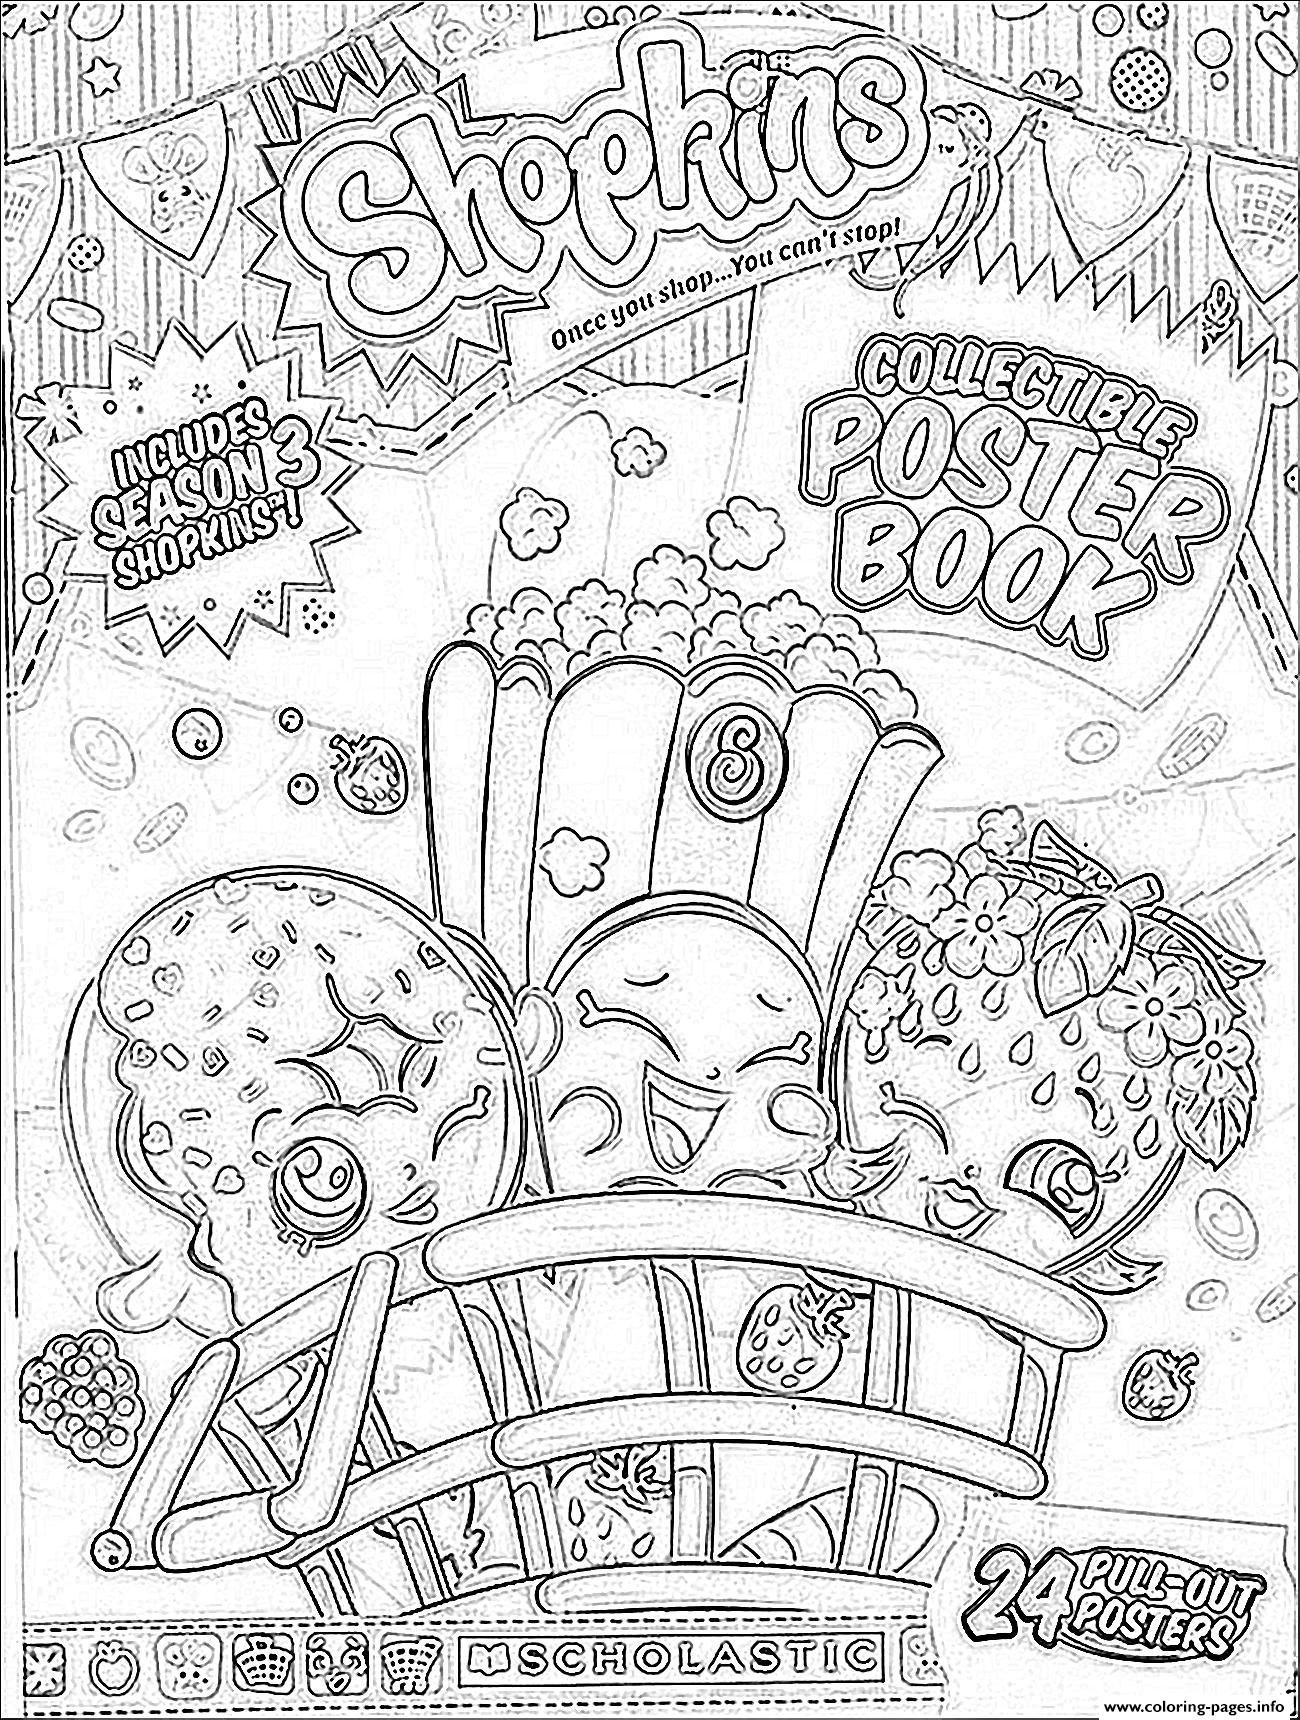 Shopkins Season 3 Book Coloring Pages Printable And To Print For Free Find More Online Kids Adults Of